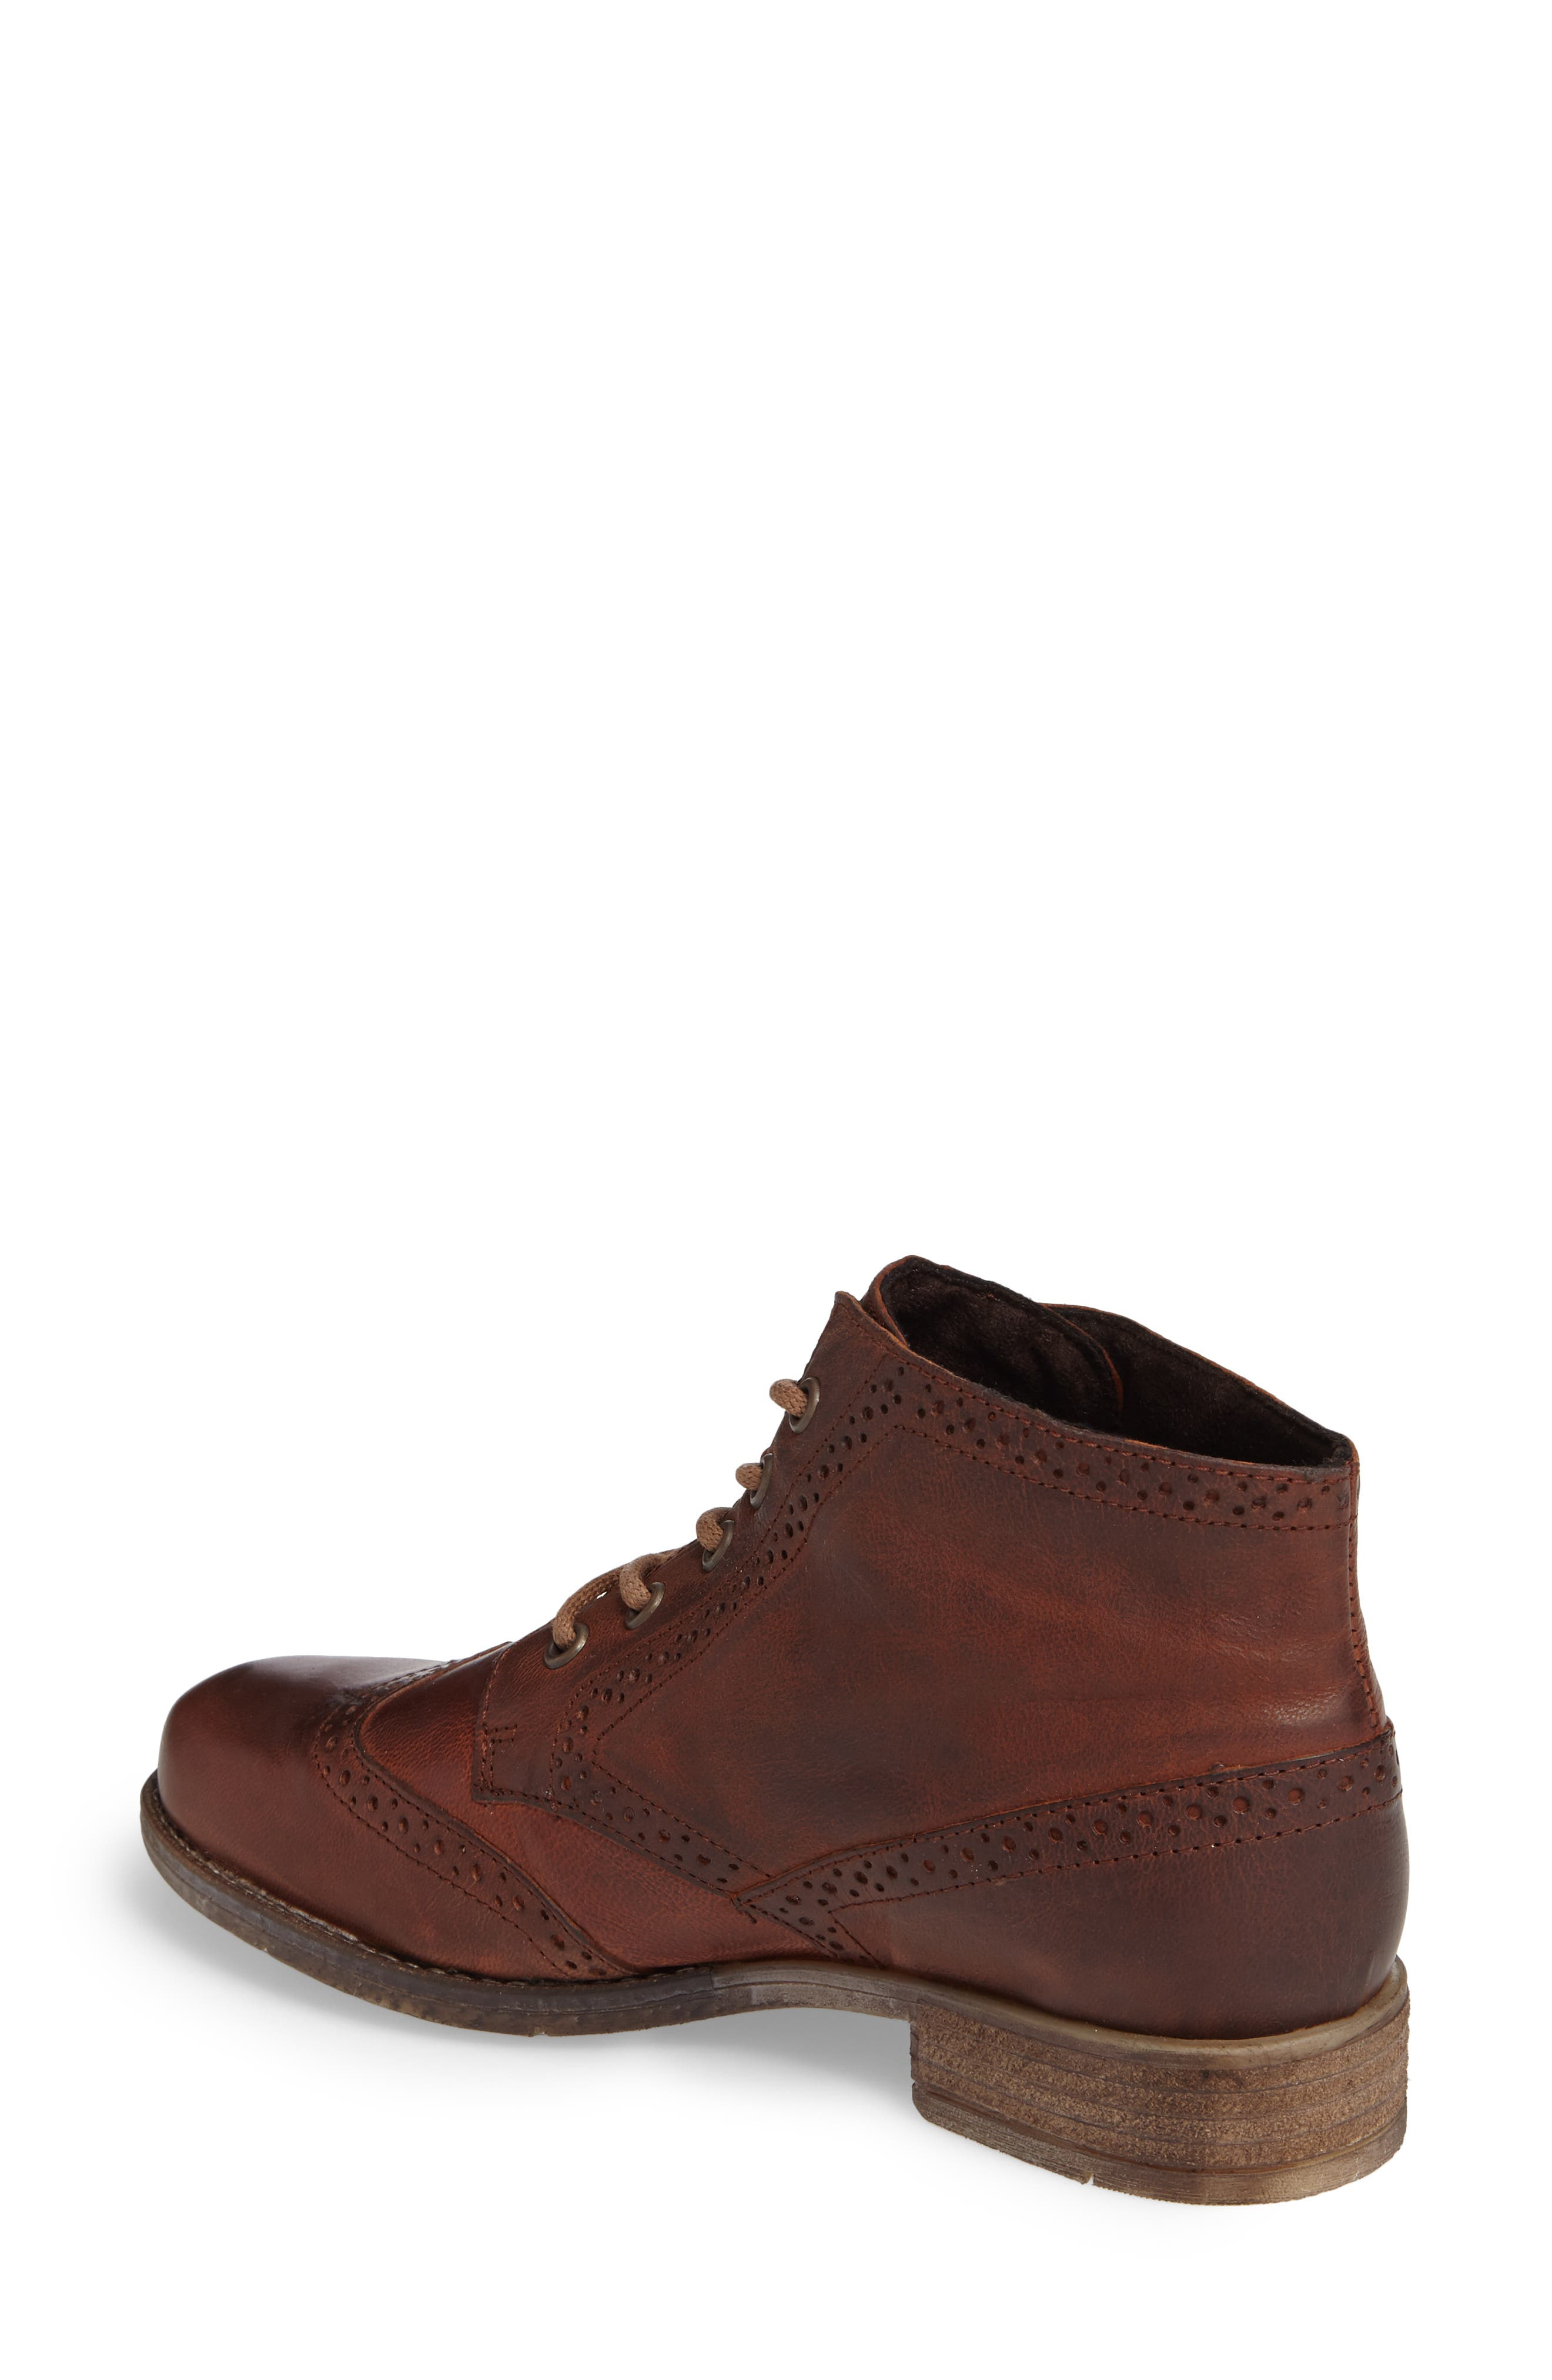 'Sienna 15' Wingtip Bootie,                             Alternate thumbnail 2, color,                             Camel Leather